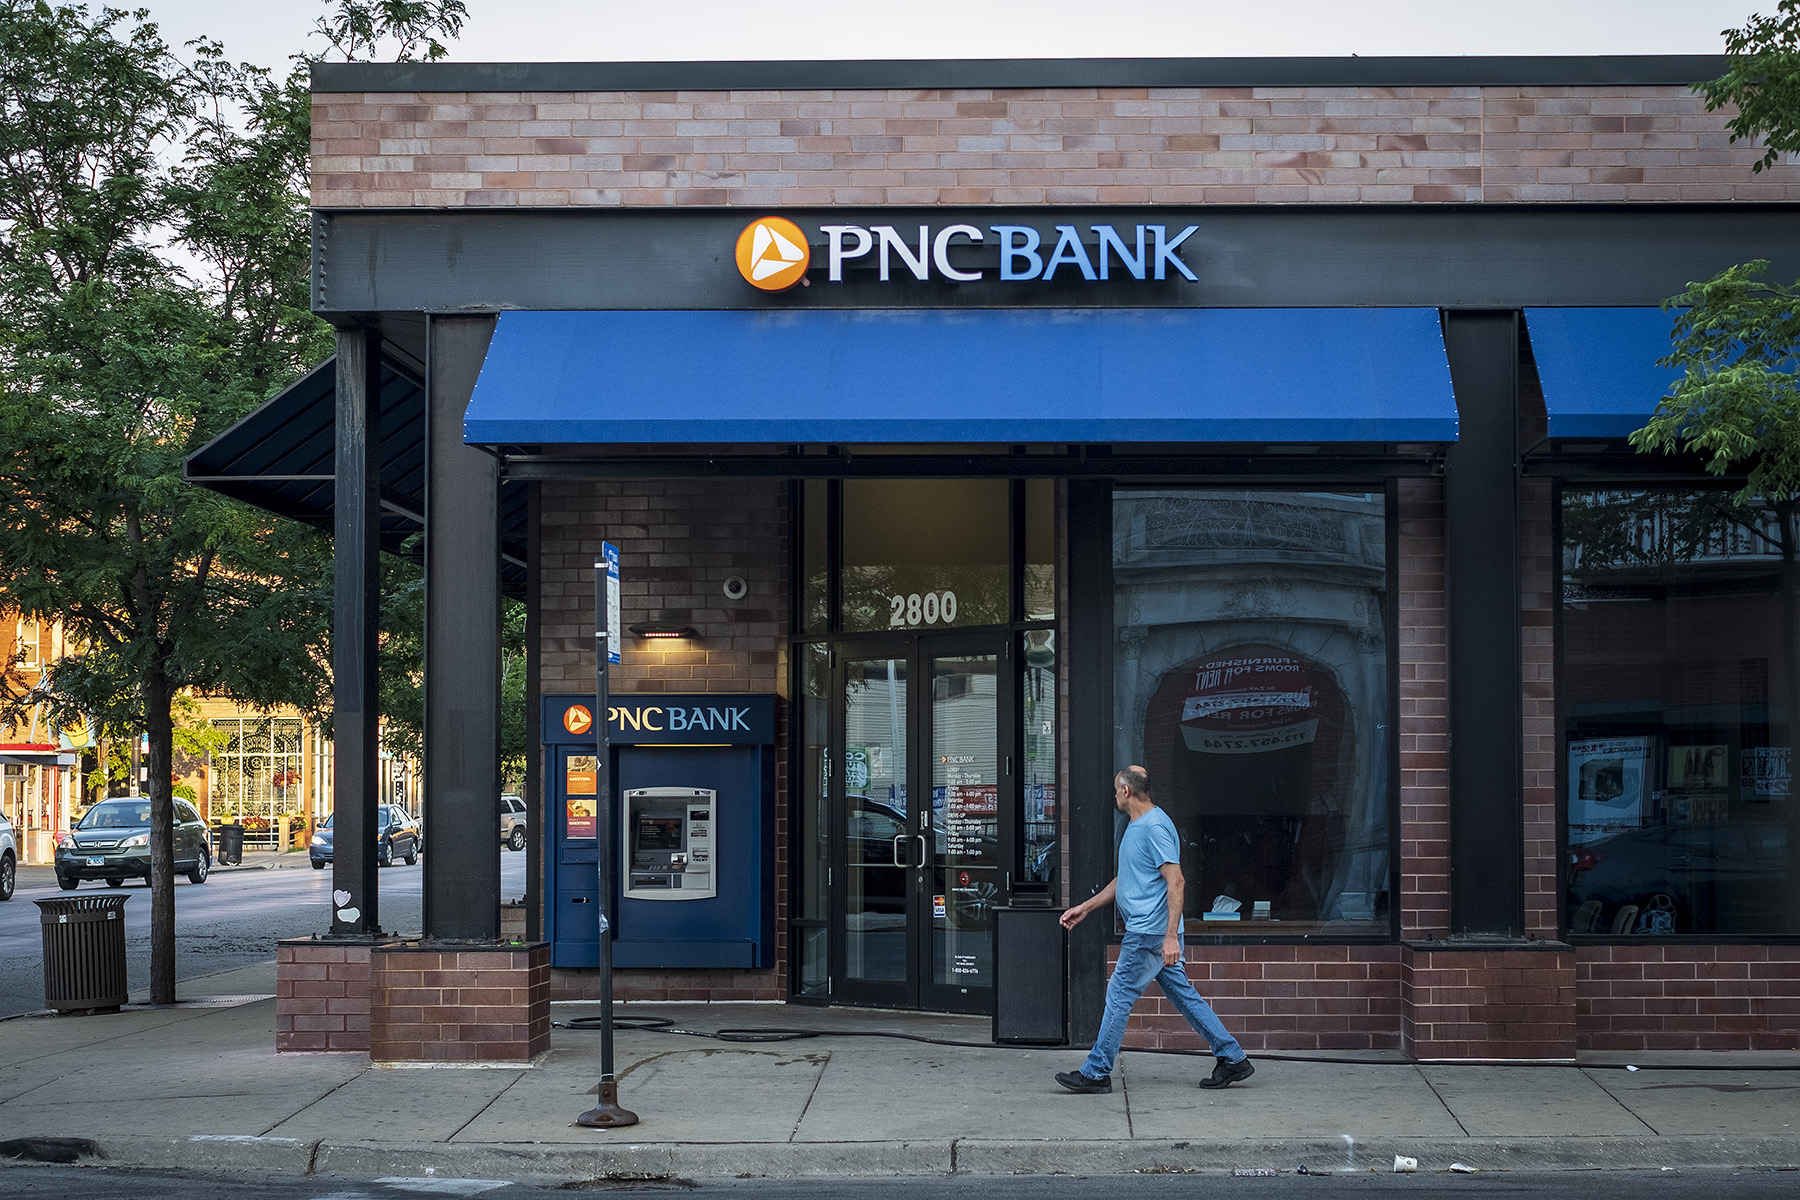 PNC Bank has closed or applied for 196 branch closings with bank regulators this year. (Getty Images)